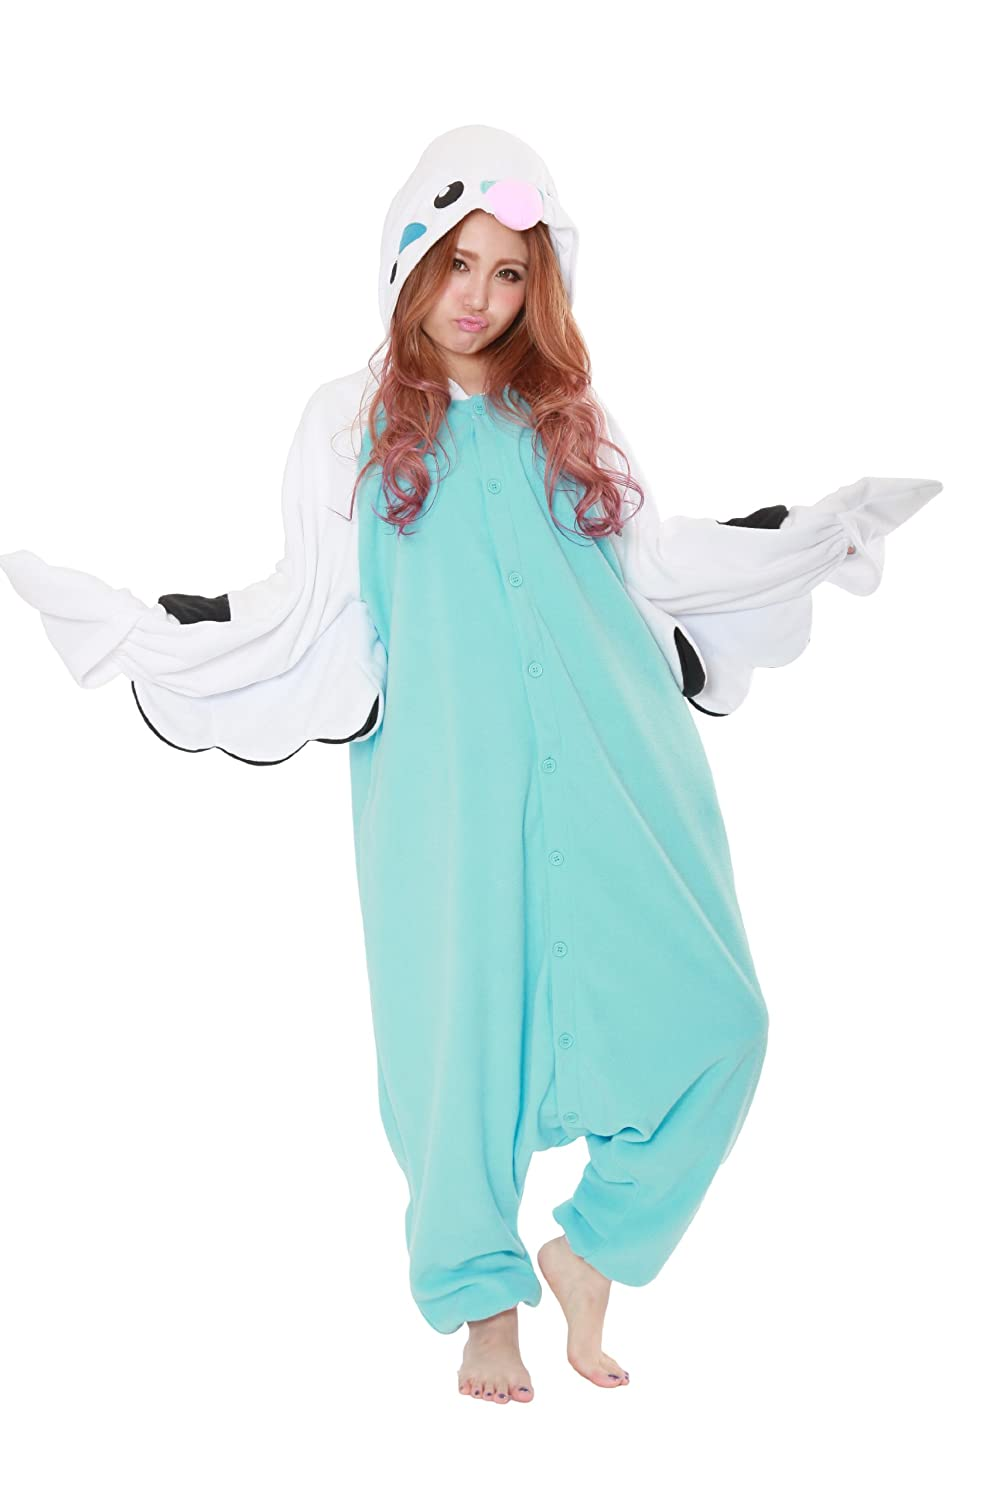 6f8c5ca70d62 Amazon.com  Animal Adults Onesie Kigurumi Costumes  Clothing